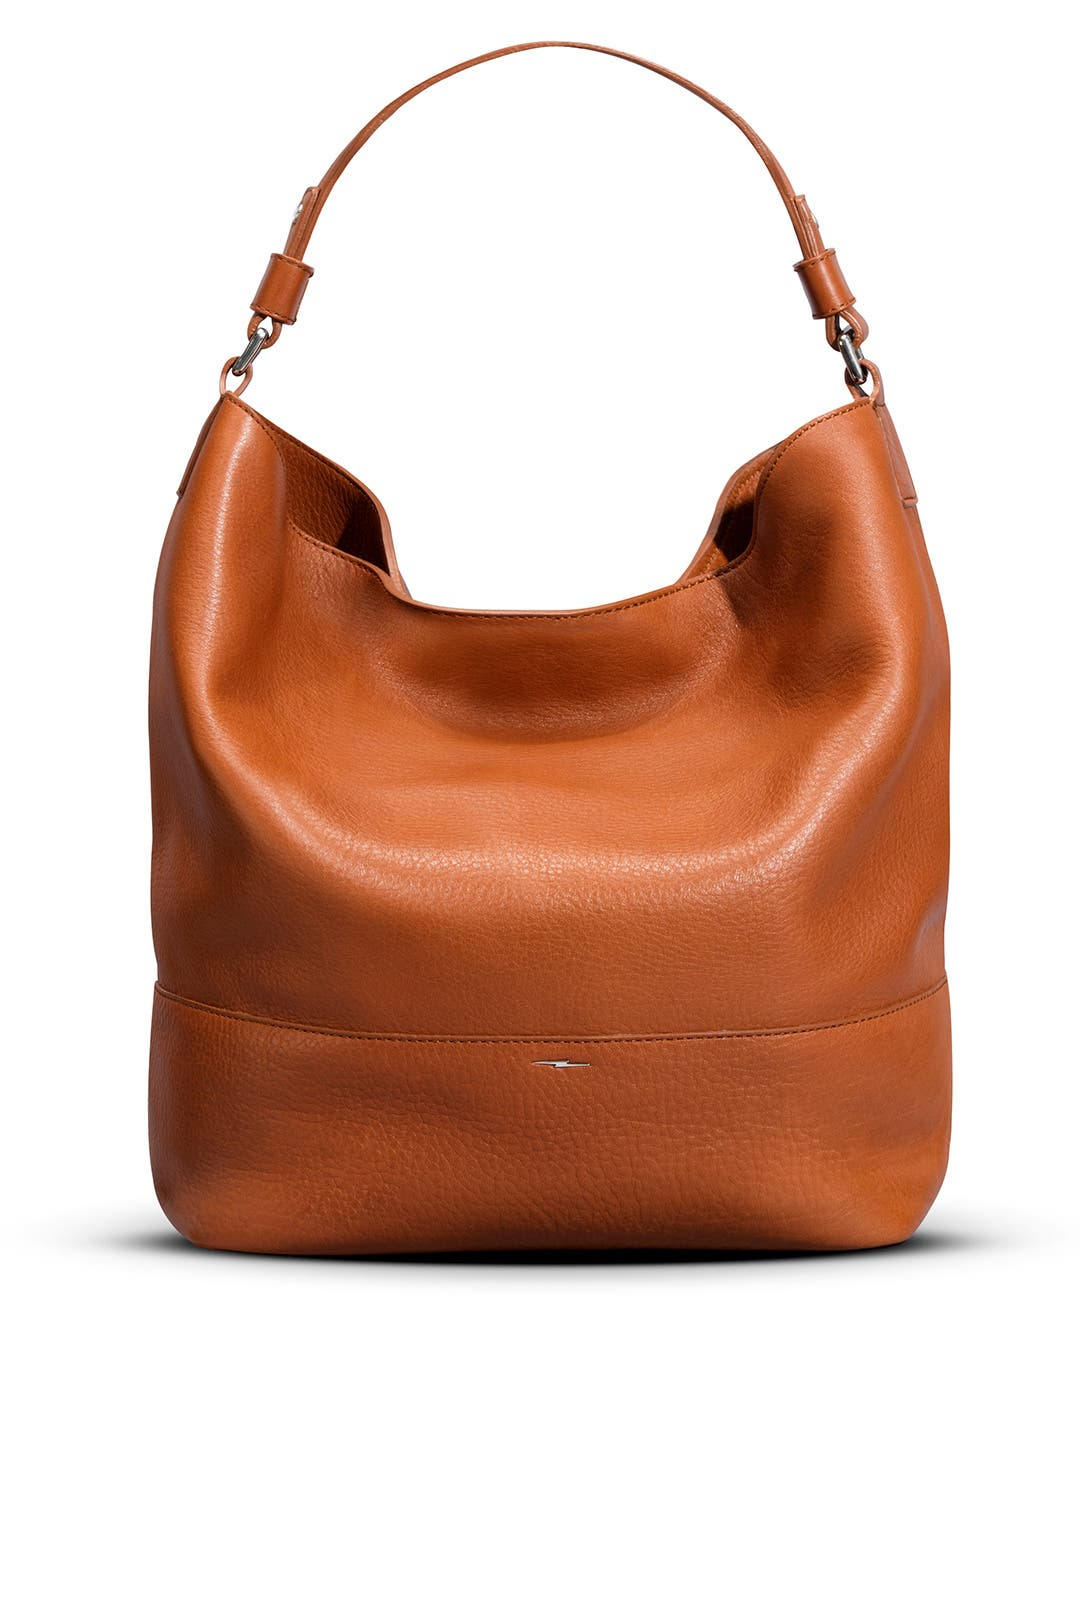 Tan Relaxed Hobo by Shinola for $150 | Rent the Runway